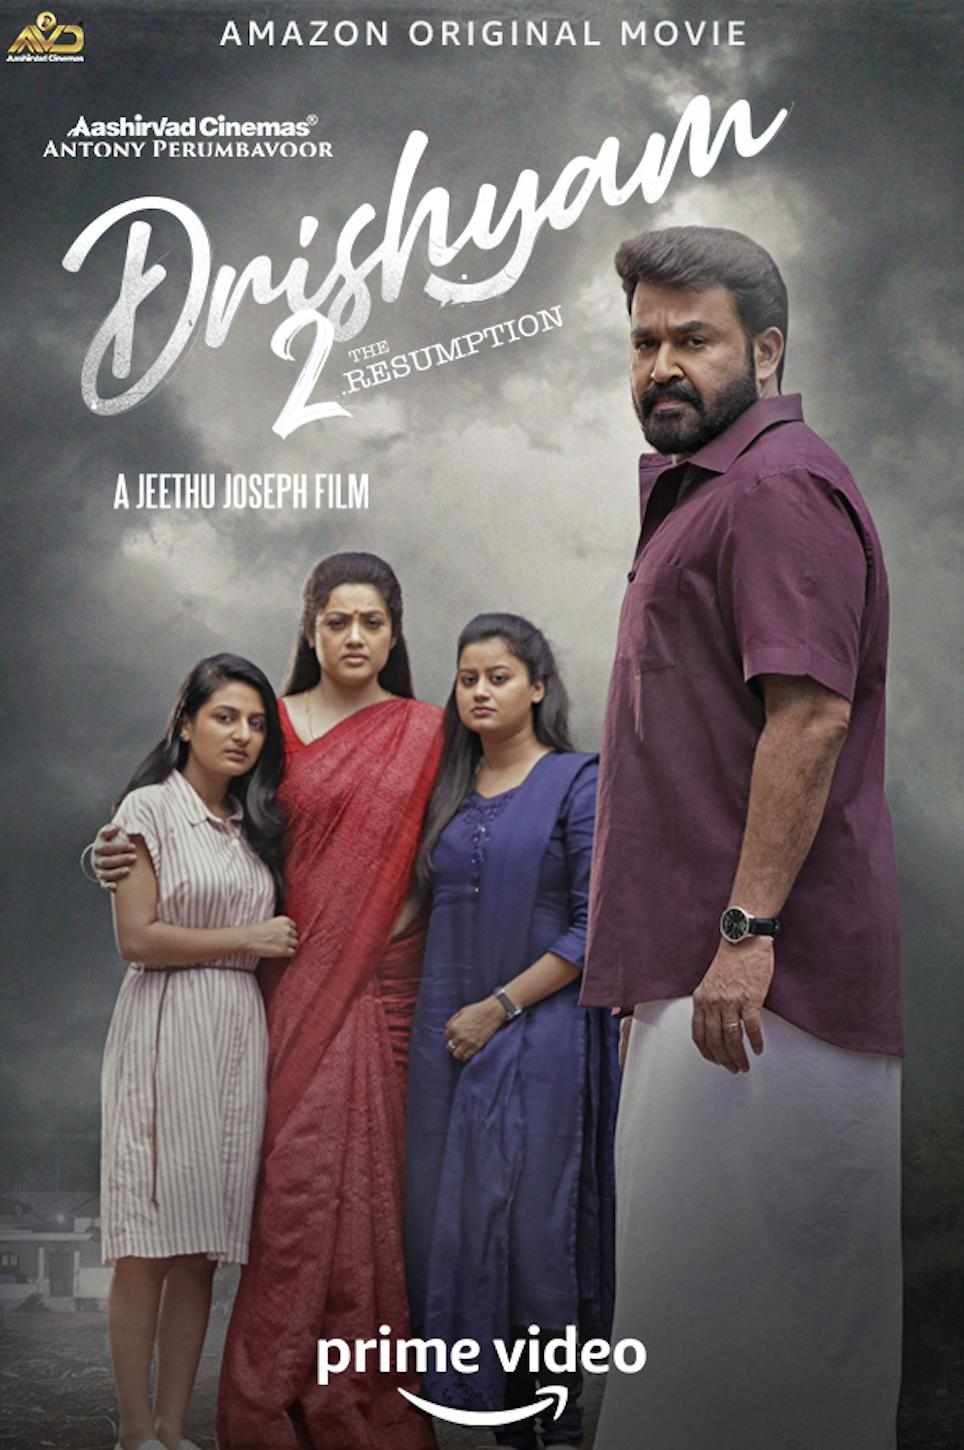 Drishyam 2 (2021) Malayalam 720p HDRip x264 AAC ESubs  (1.2GB) Full Movie Download